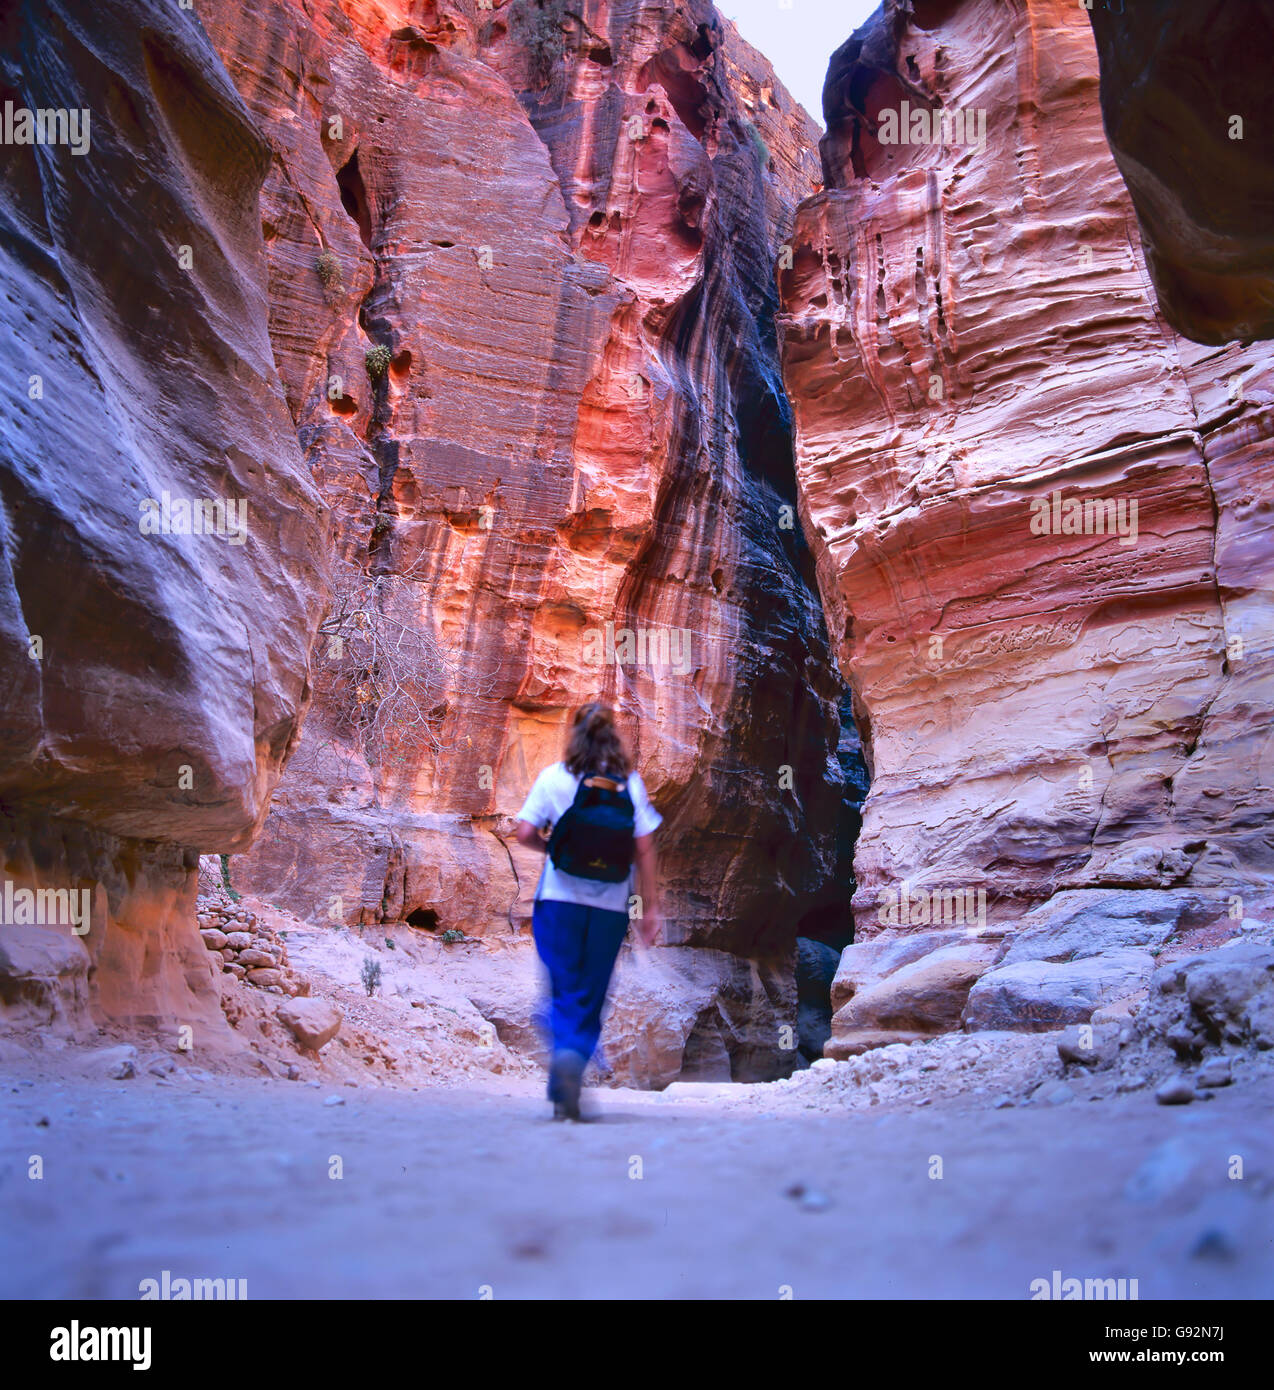 The Siq, the narrow slot-canyon that serves as the entrance passage to the hidden city of Petra, Jordan, seen here Stock Photo